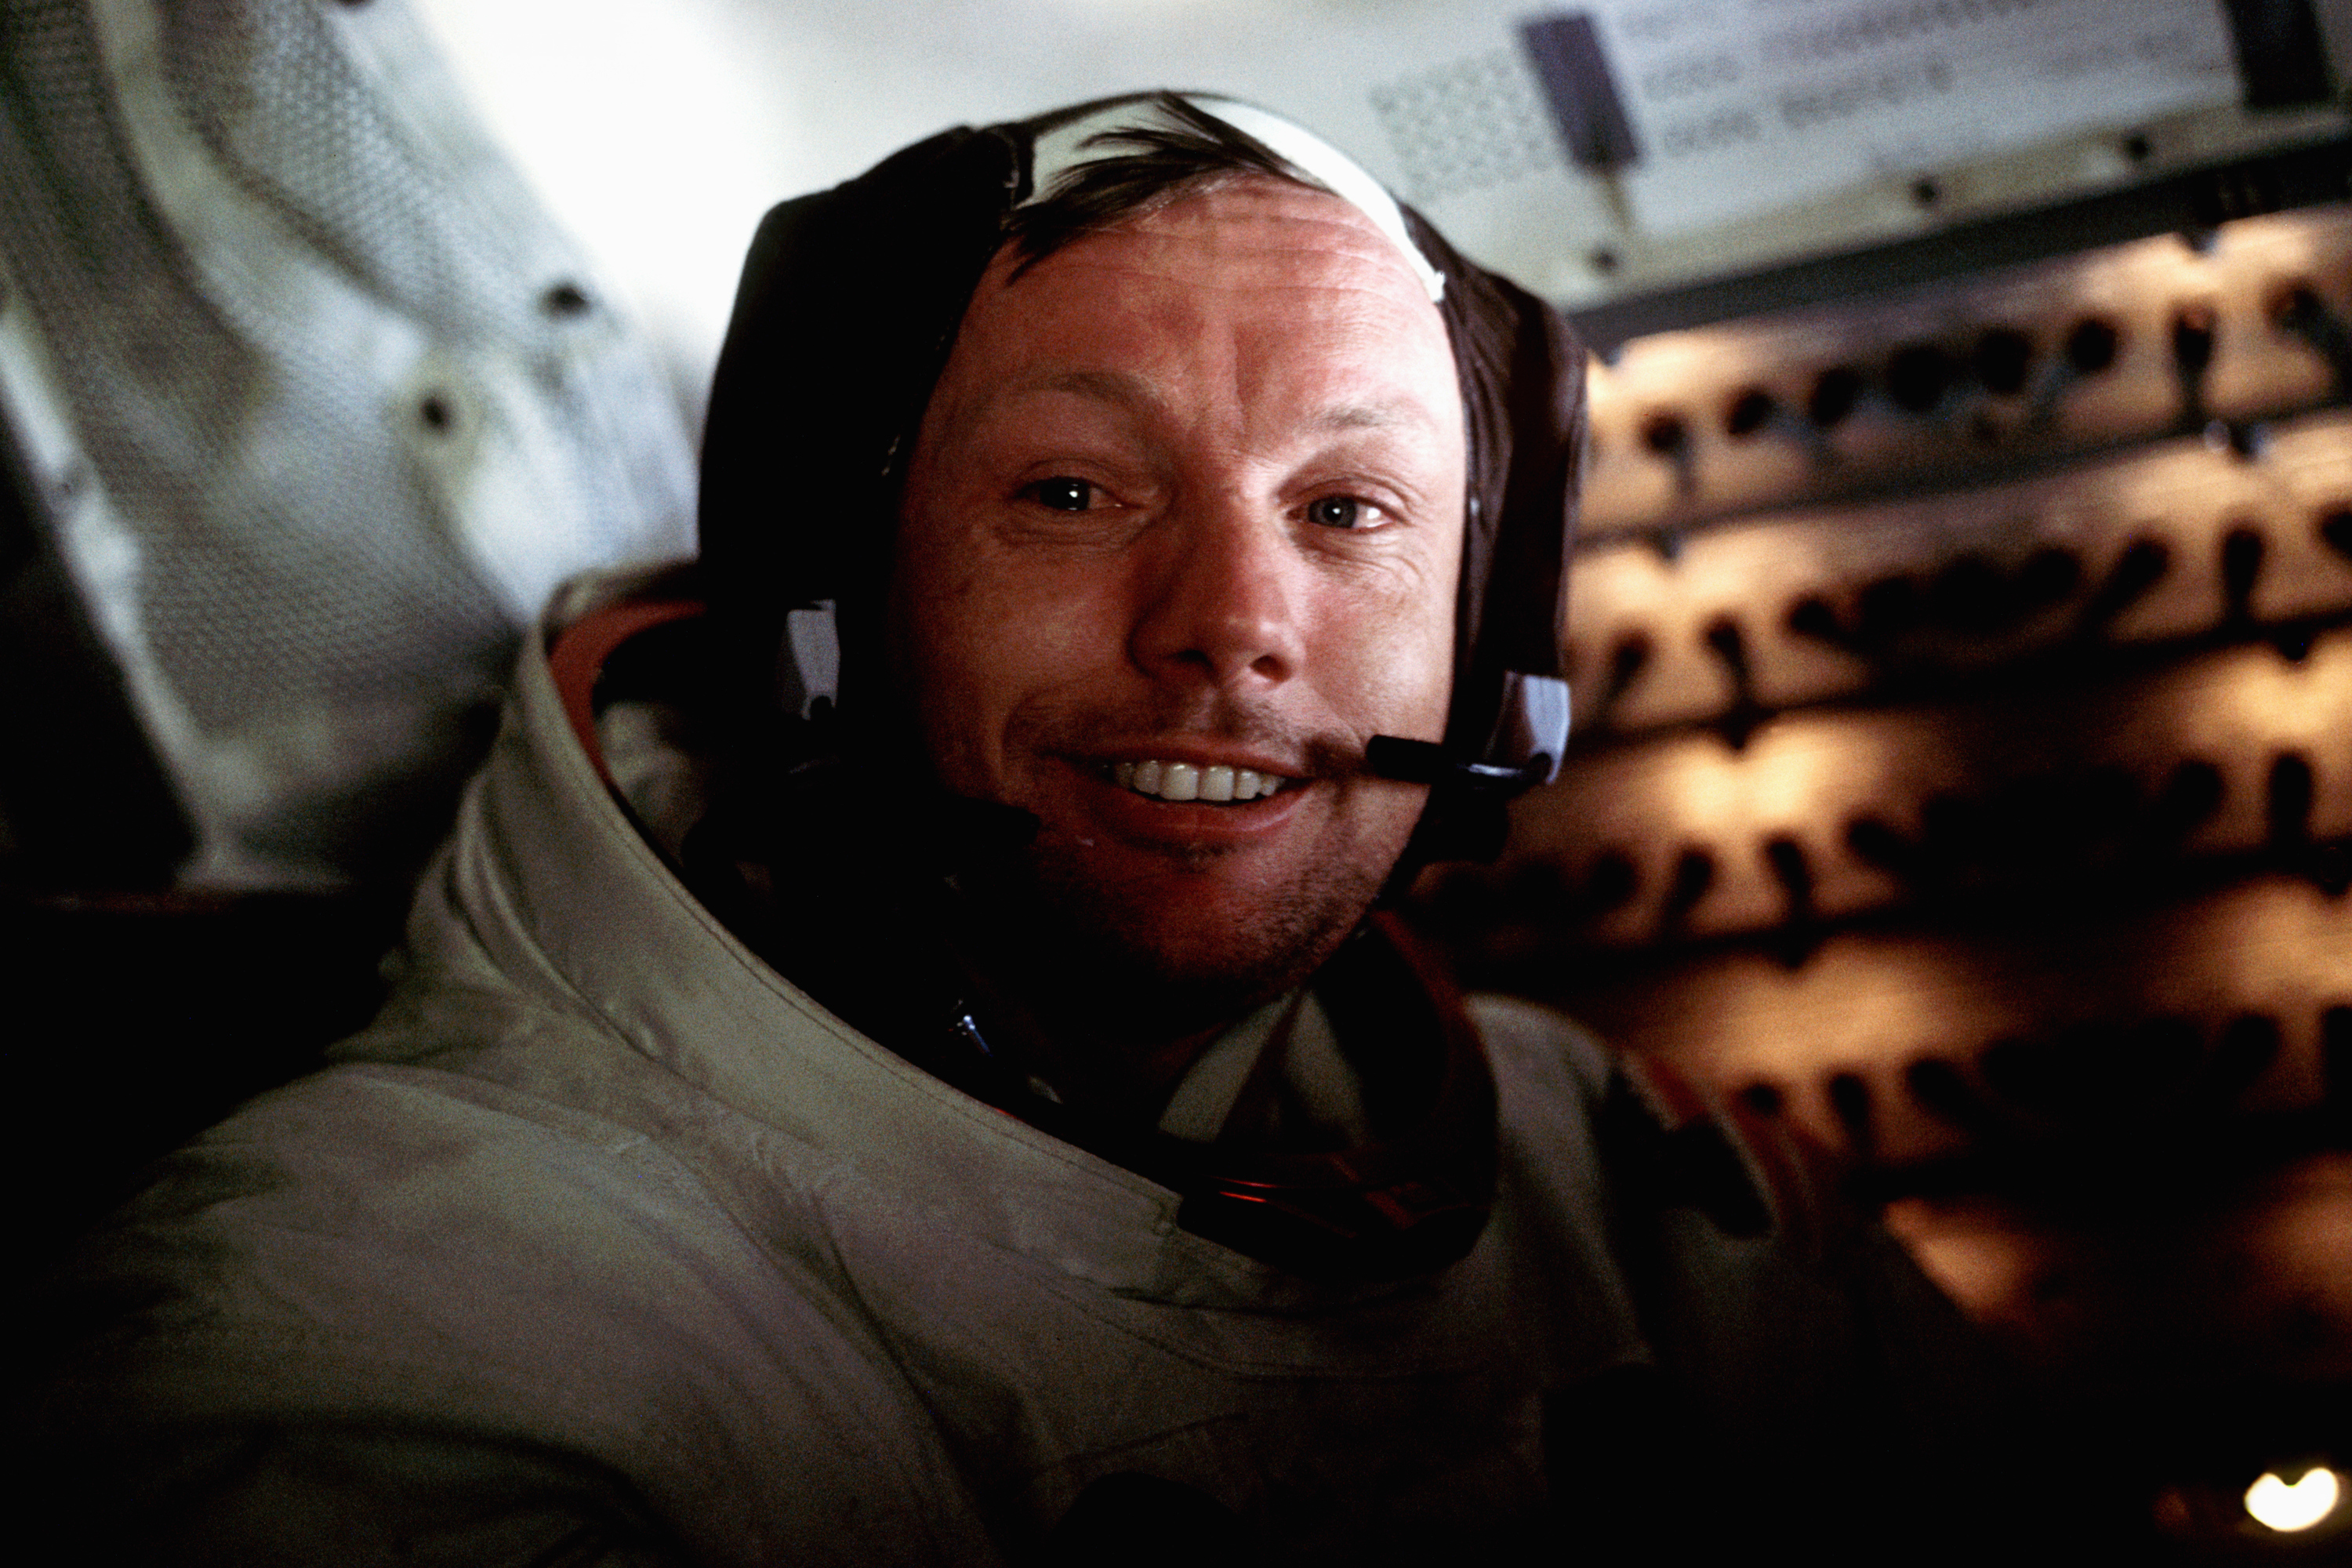 A portrait of Neil Armstrong aboard the Lunar Module Eagle on the lunar surface just after the first moon walk.